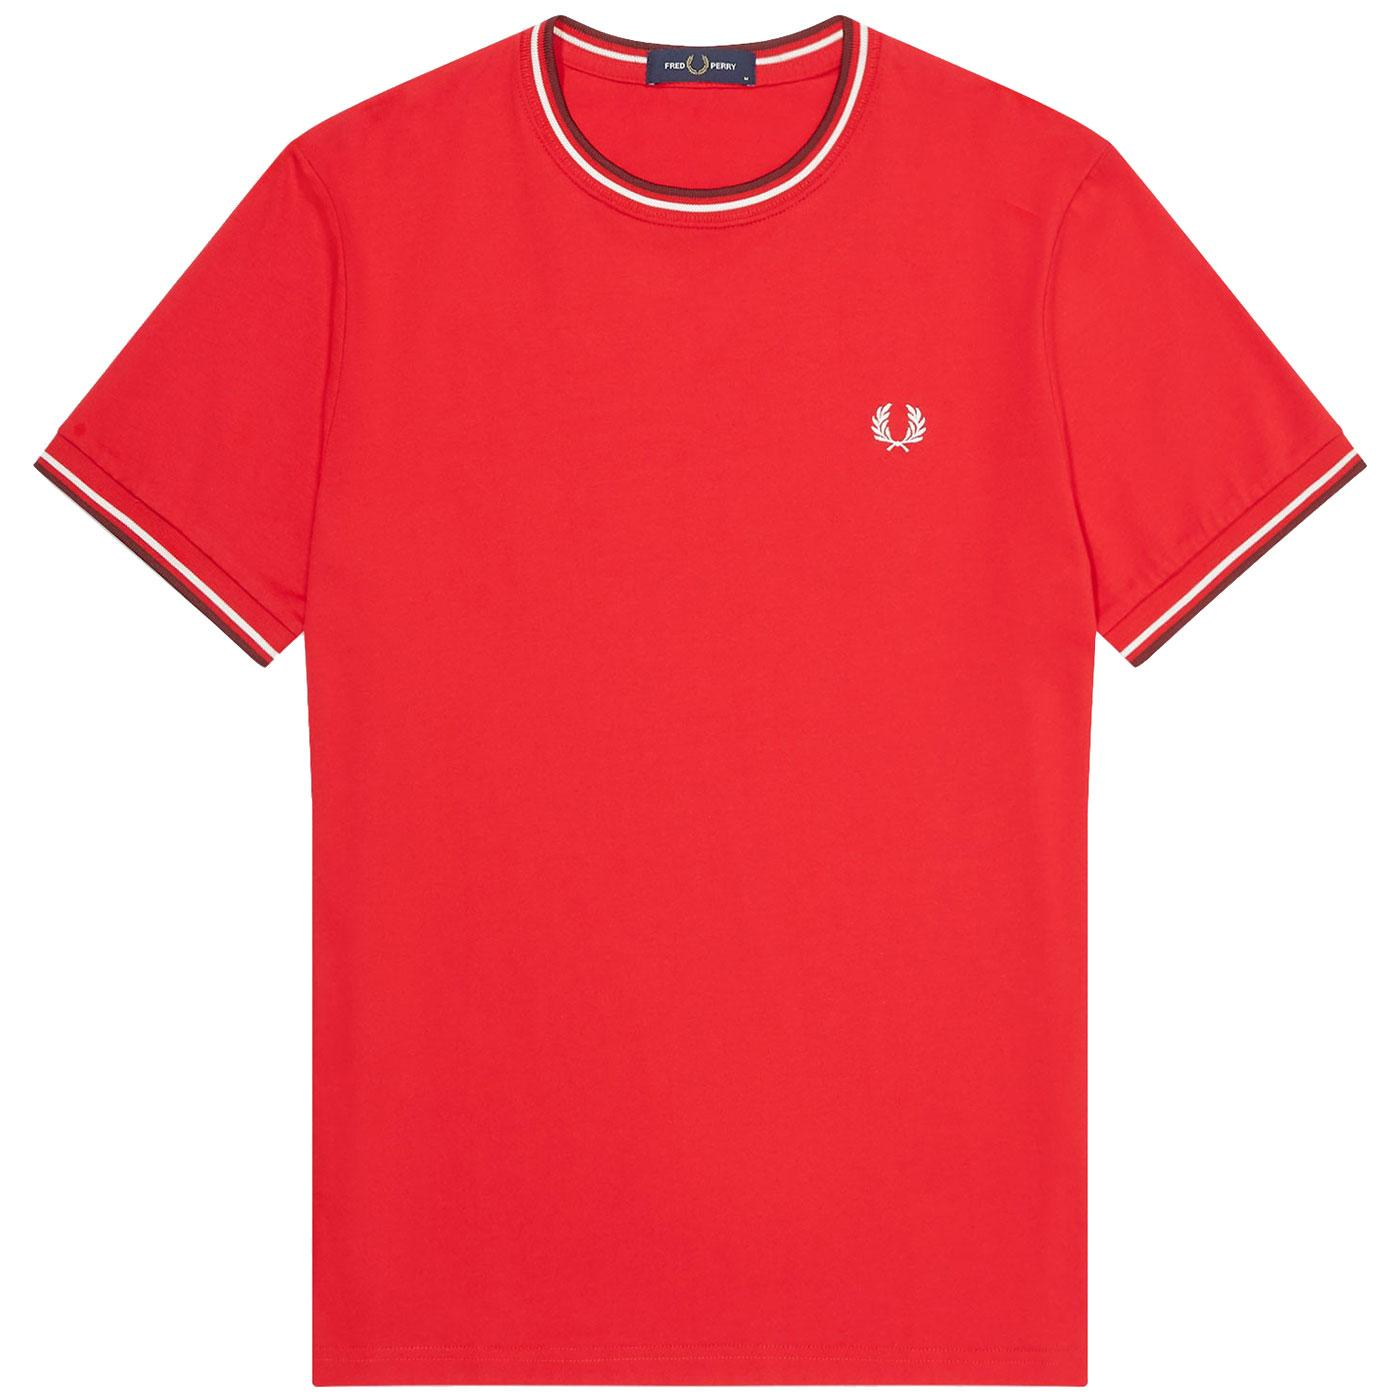 FRED PERRY M1588 Mod Twin Tipped Crew Neck Tee JR